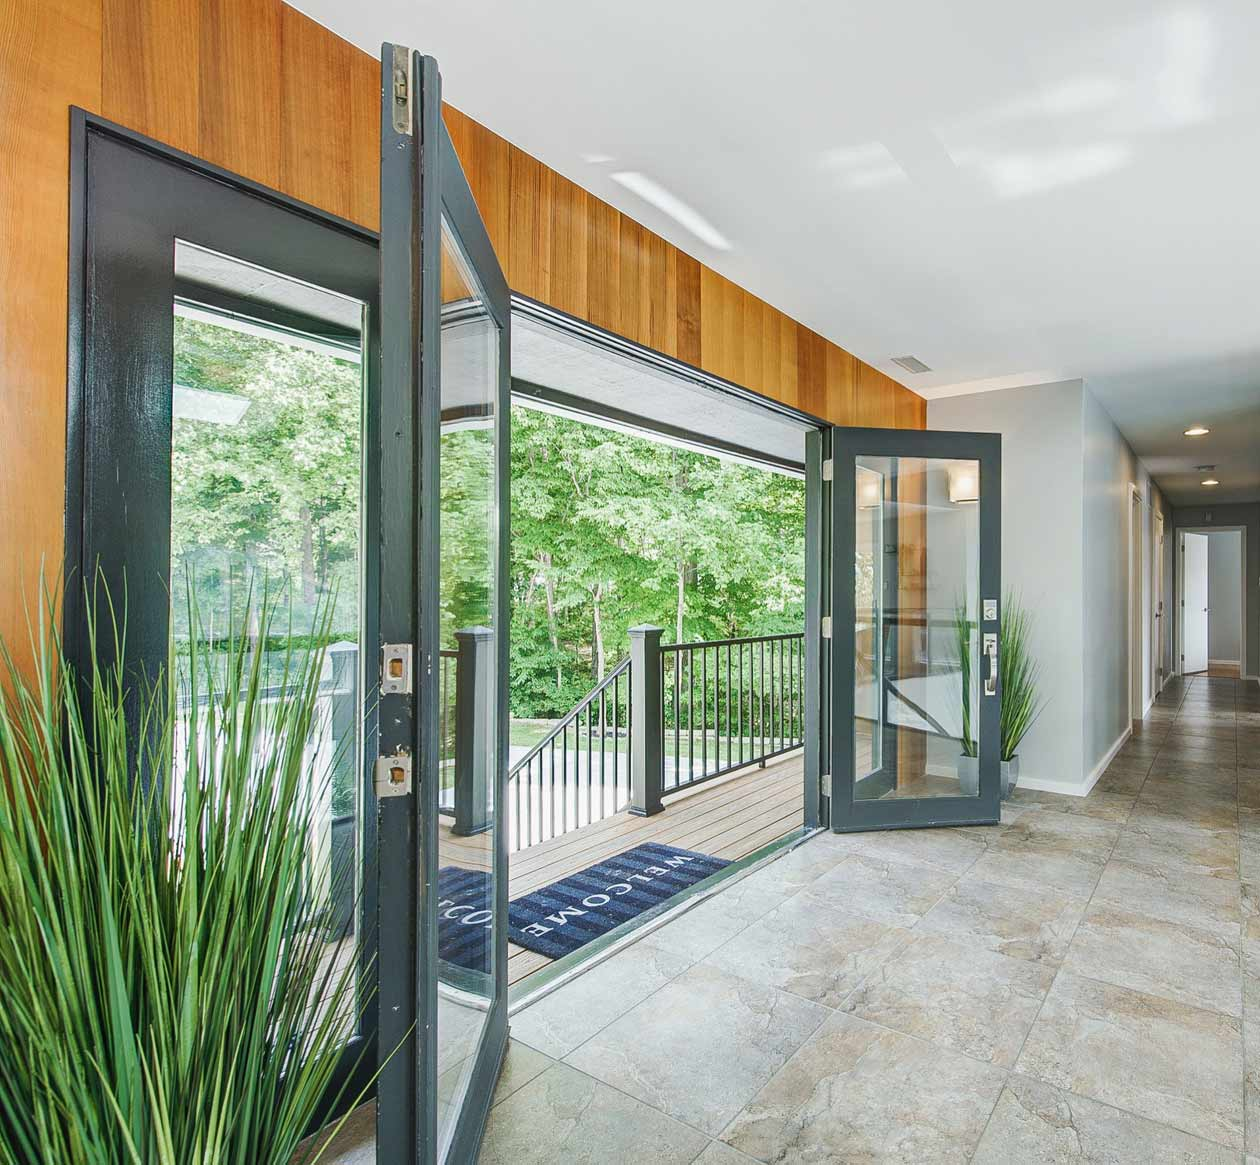 Entry Refresh incorporates Cedar-lined entry wall - Reef Court - Geist Reservoir - Indianapolis, IN - Photo by Structured Photography